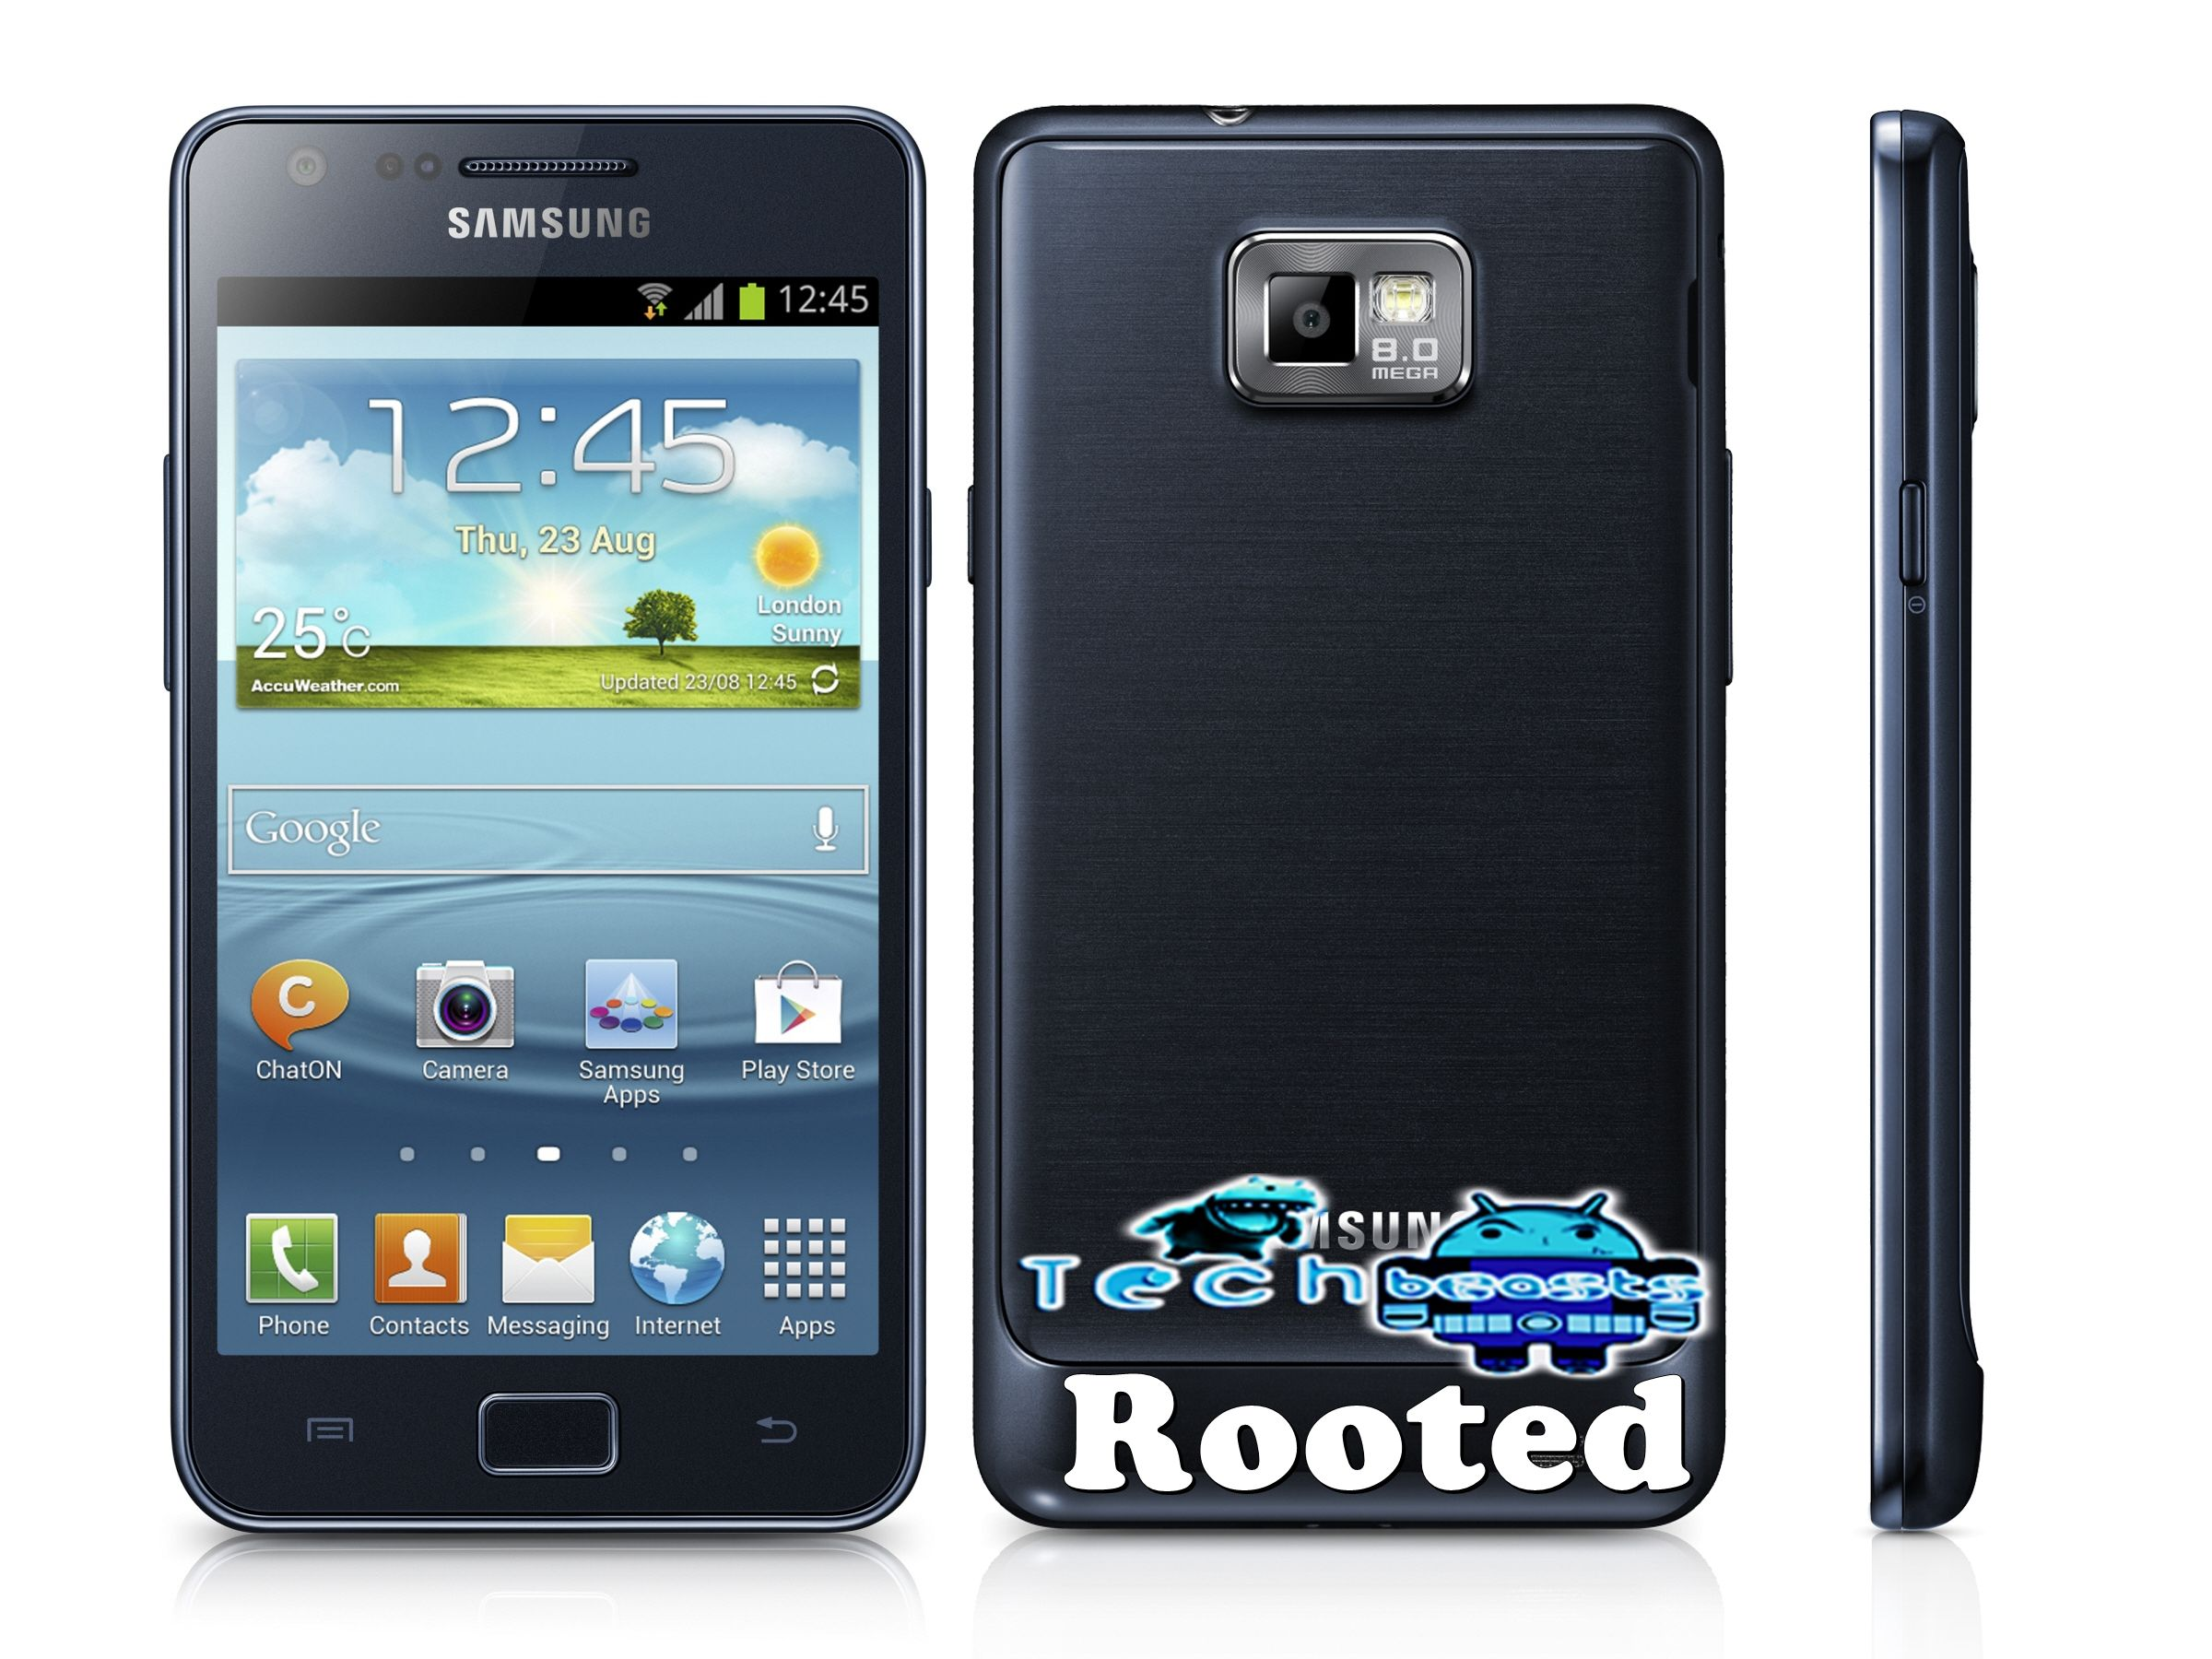 How to Install CWM & Root Samsung Galay S2 Plus GT-I9105